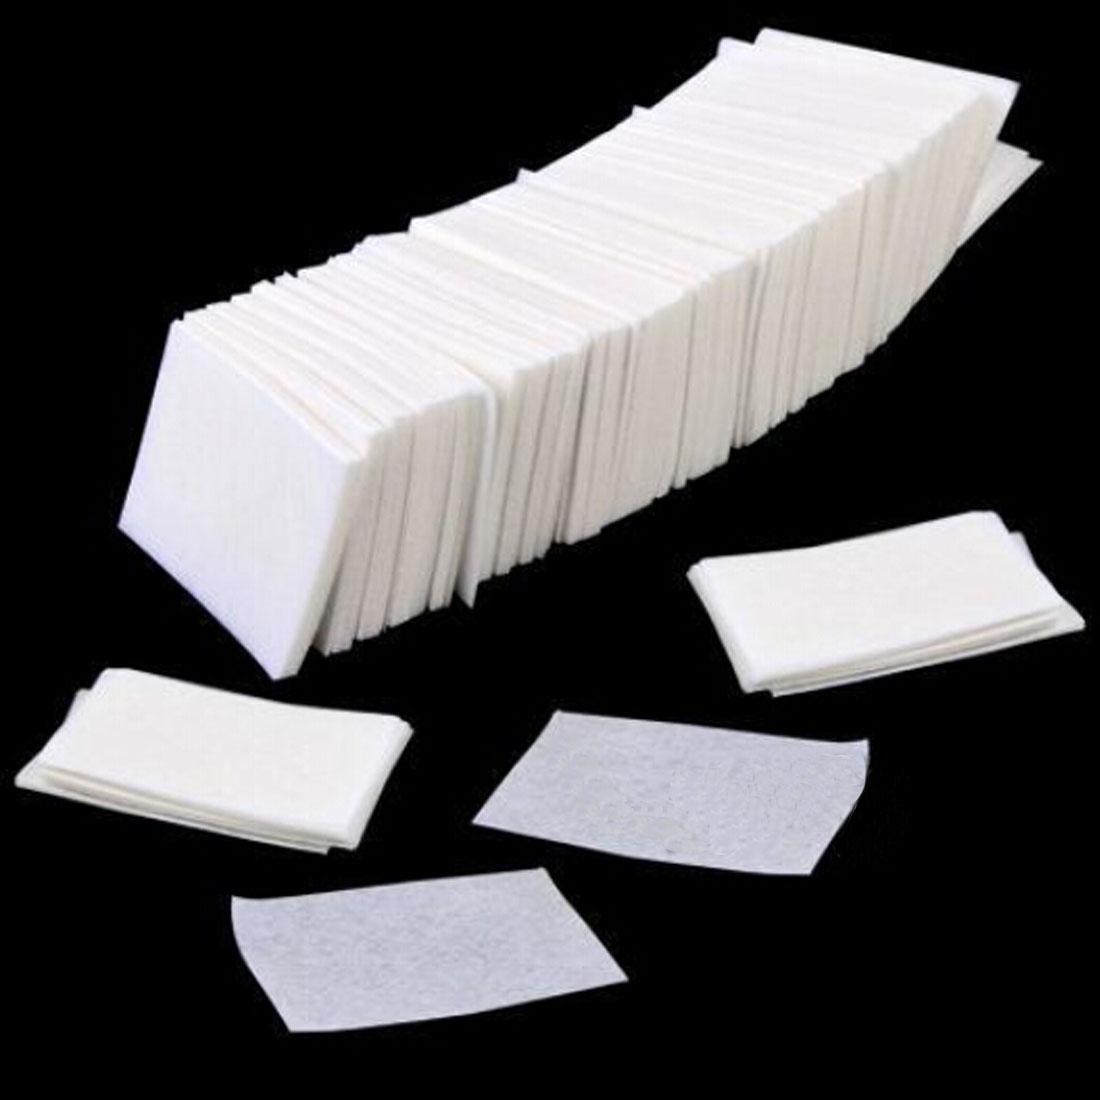 400/800Pcs Lint Wipes Nail Polish Acrylic Gel Remover Towel Paper Cotton Pads Roll Salon Nail Art Cleaner Tools Remover Pads